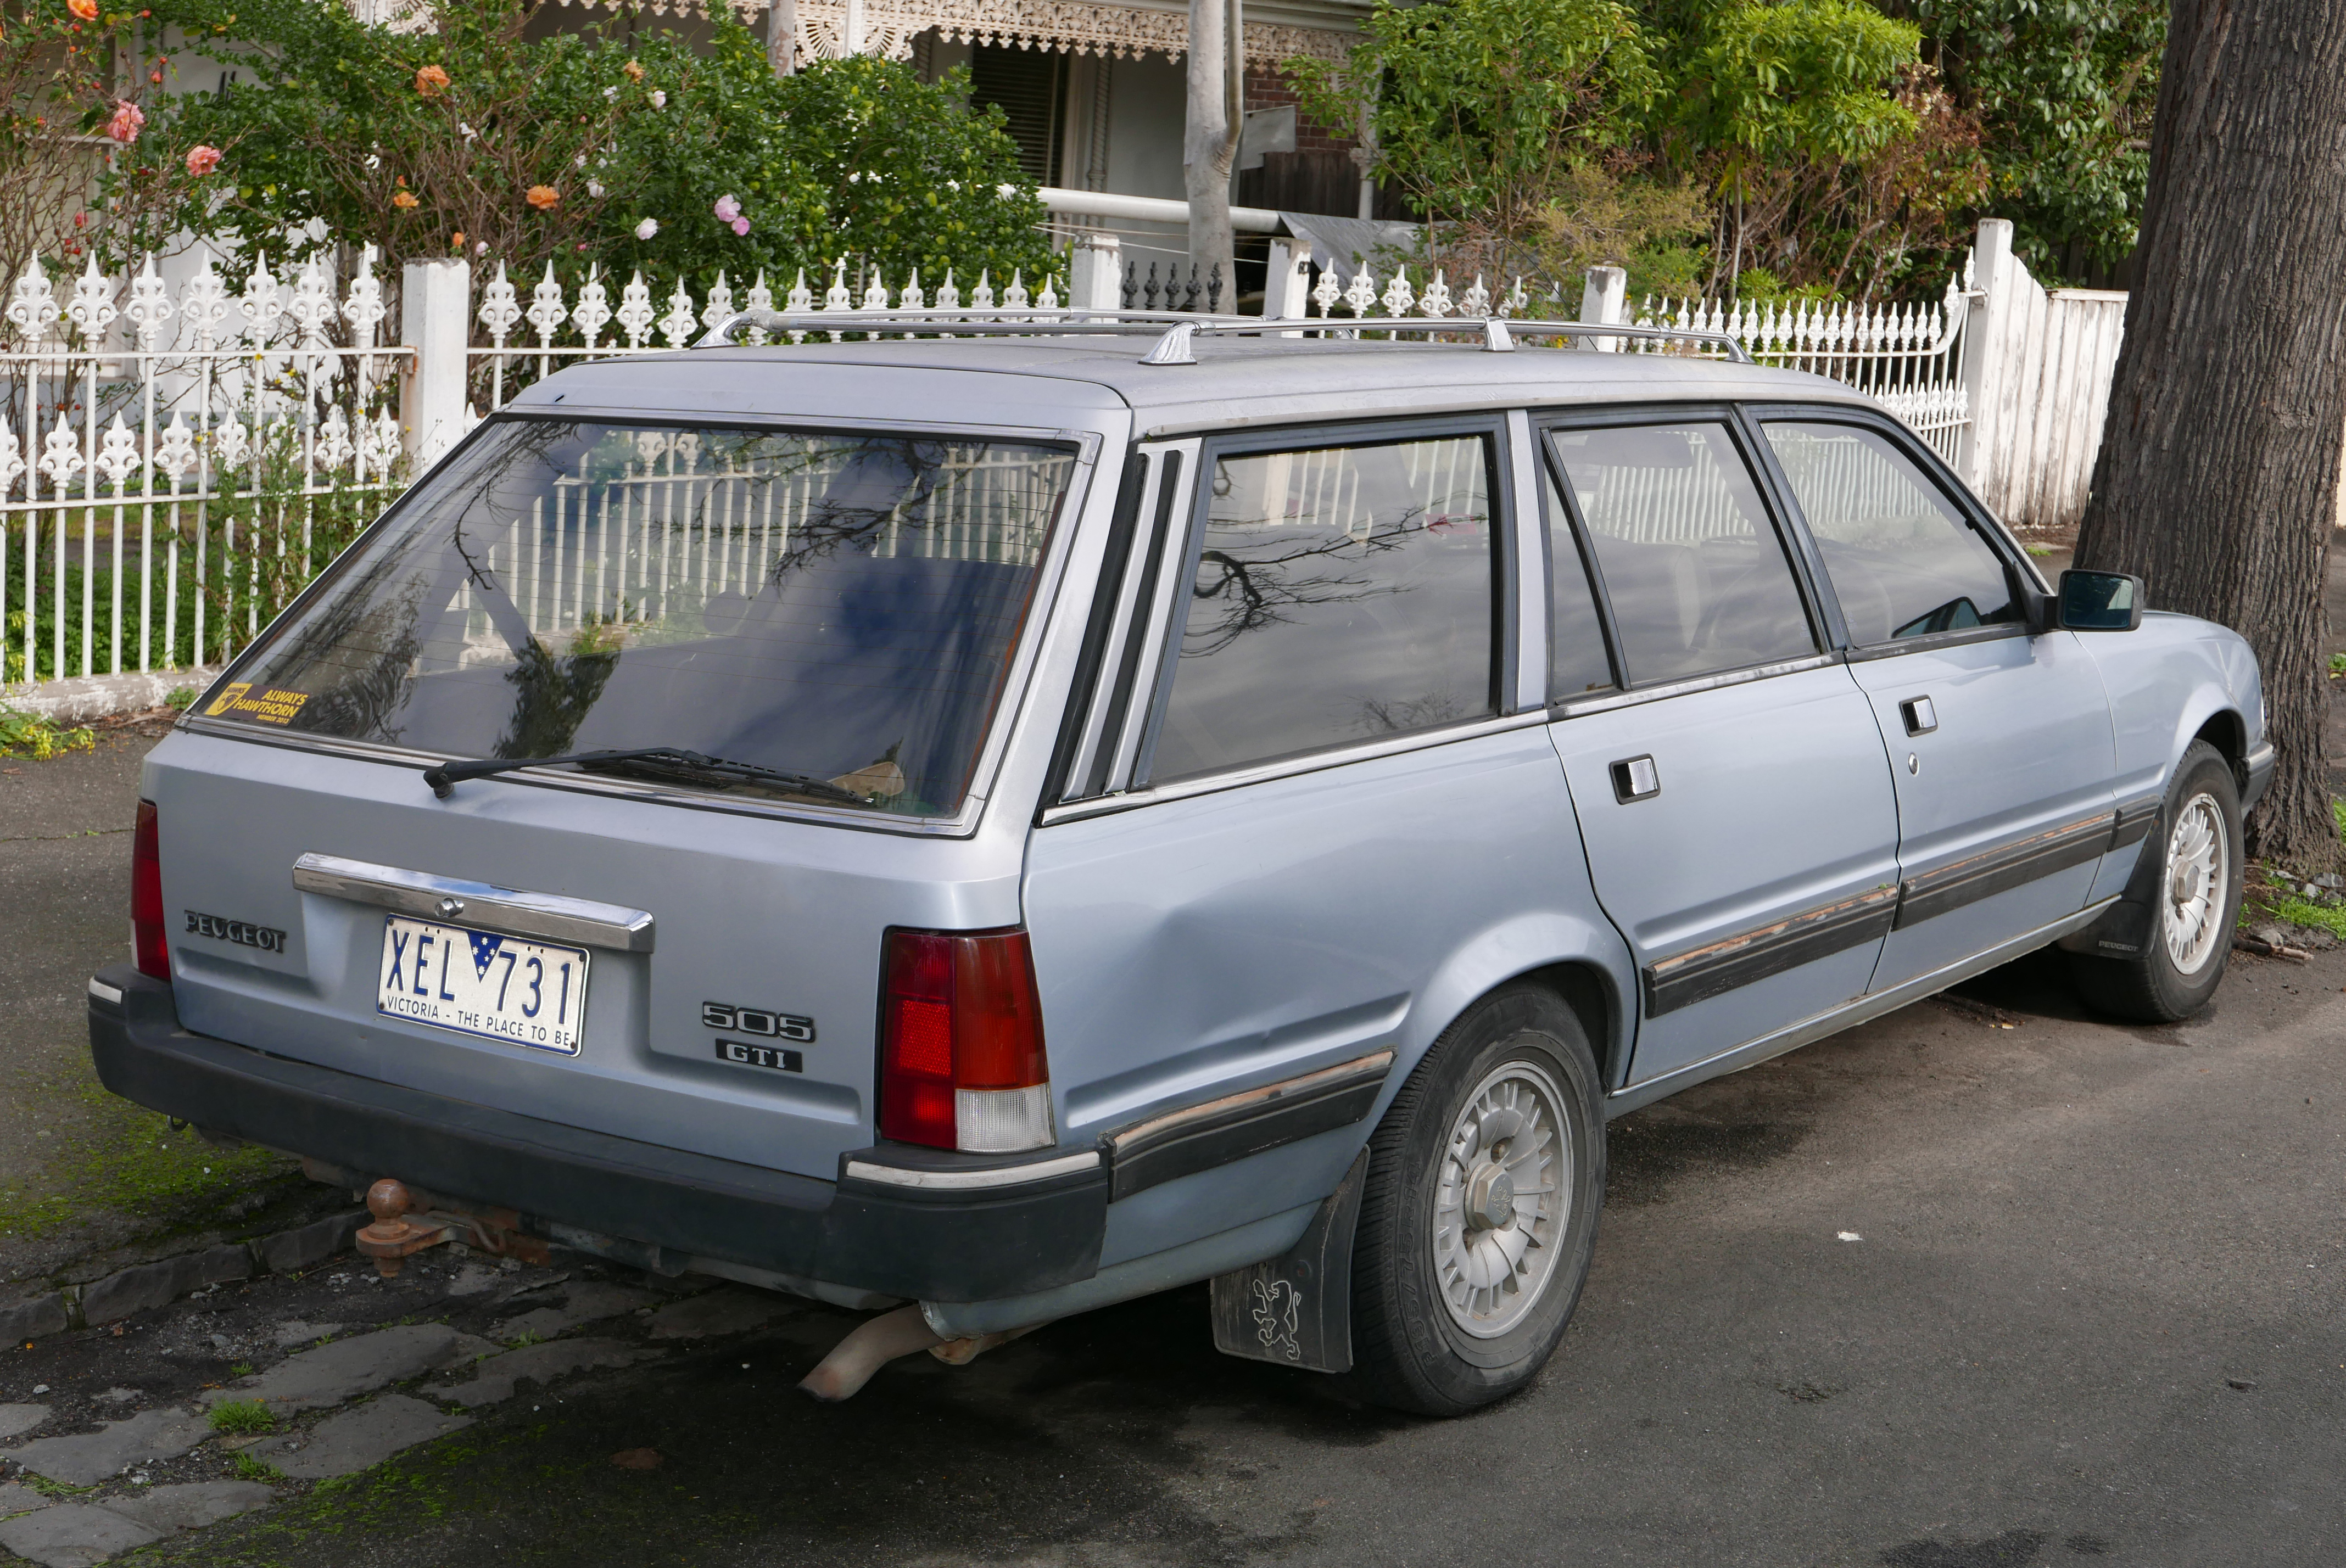 file 1988 peugeot 505 gti station wagon 2015 07 24 jpg wikimedia commons. Black Bedroom Furniture Sets. Home Design Ideas